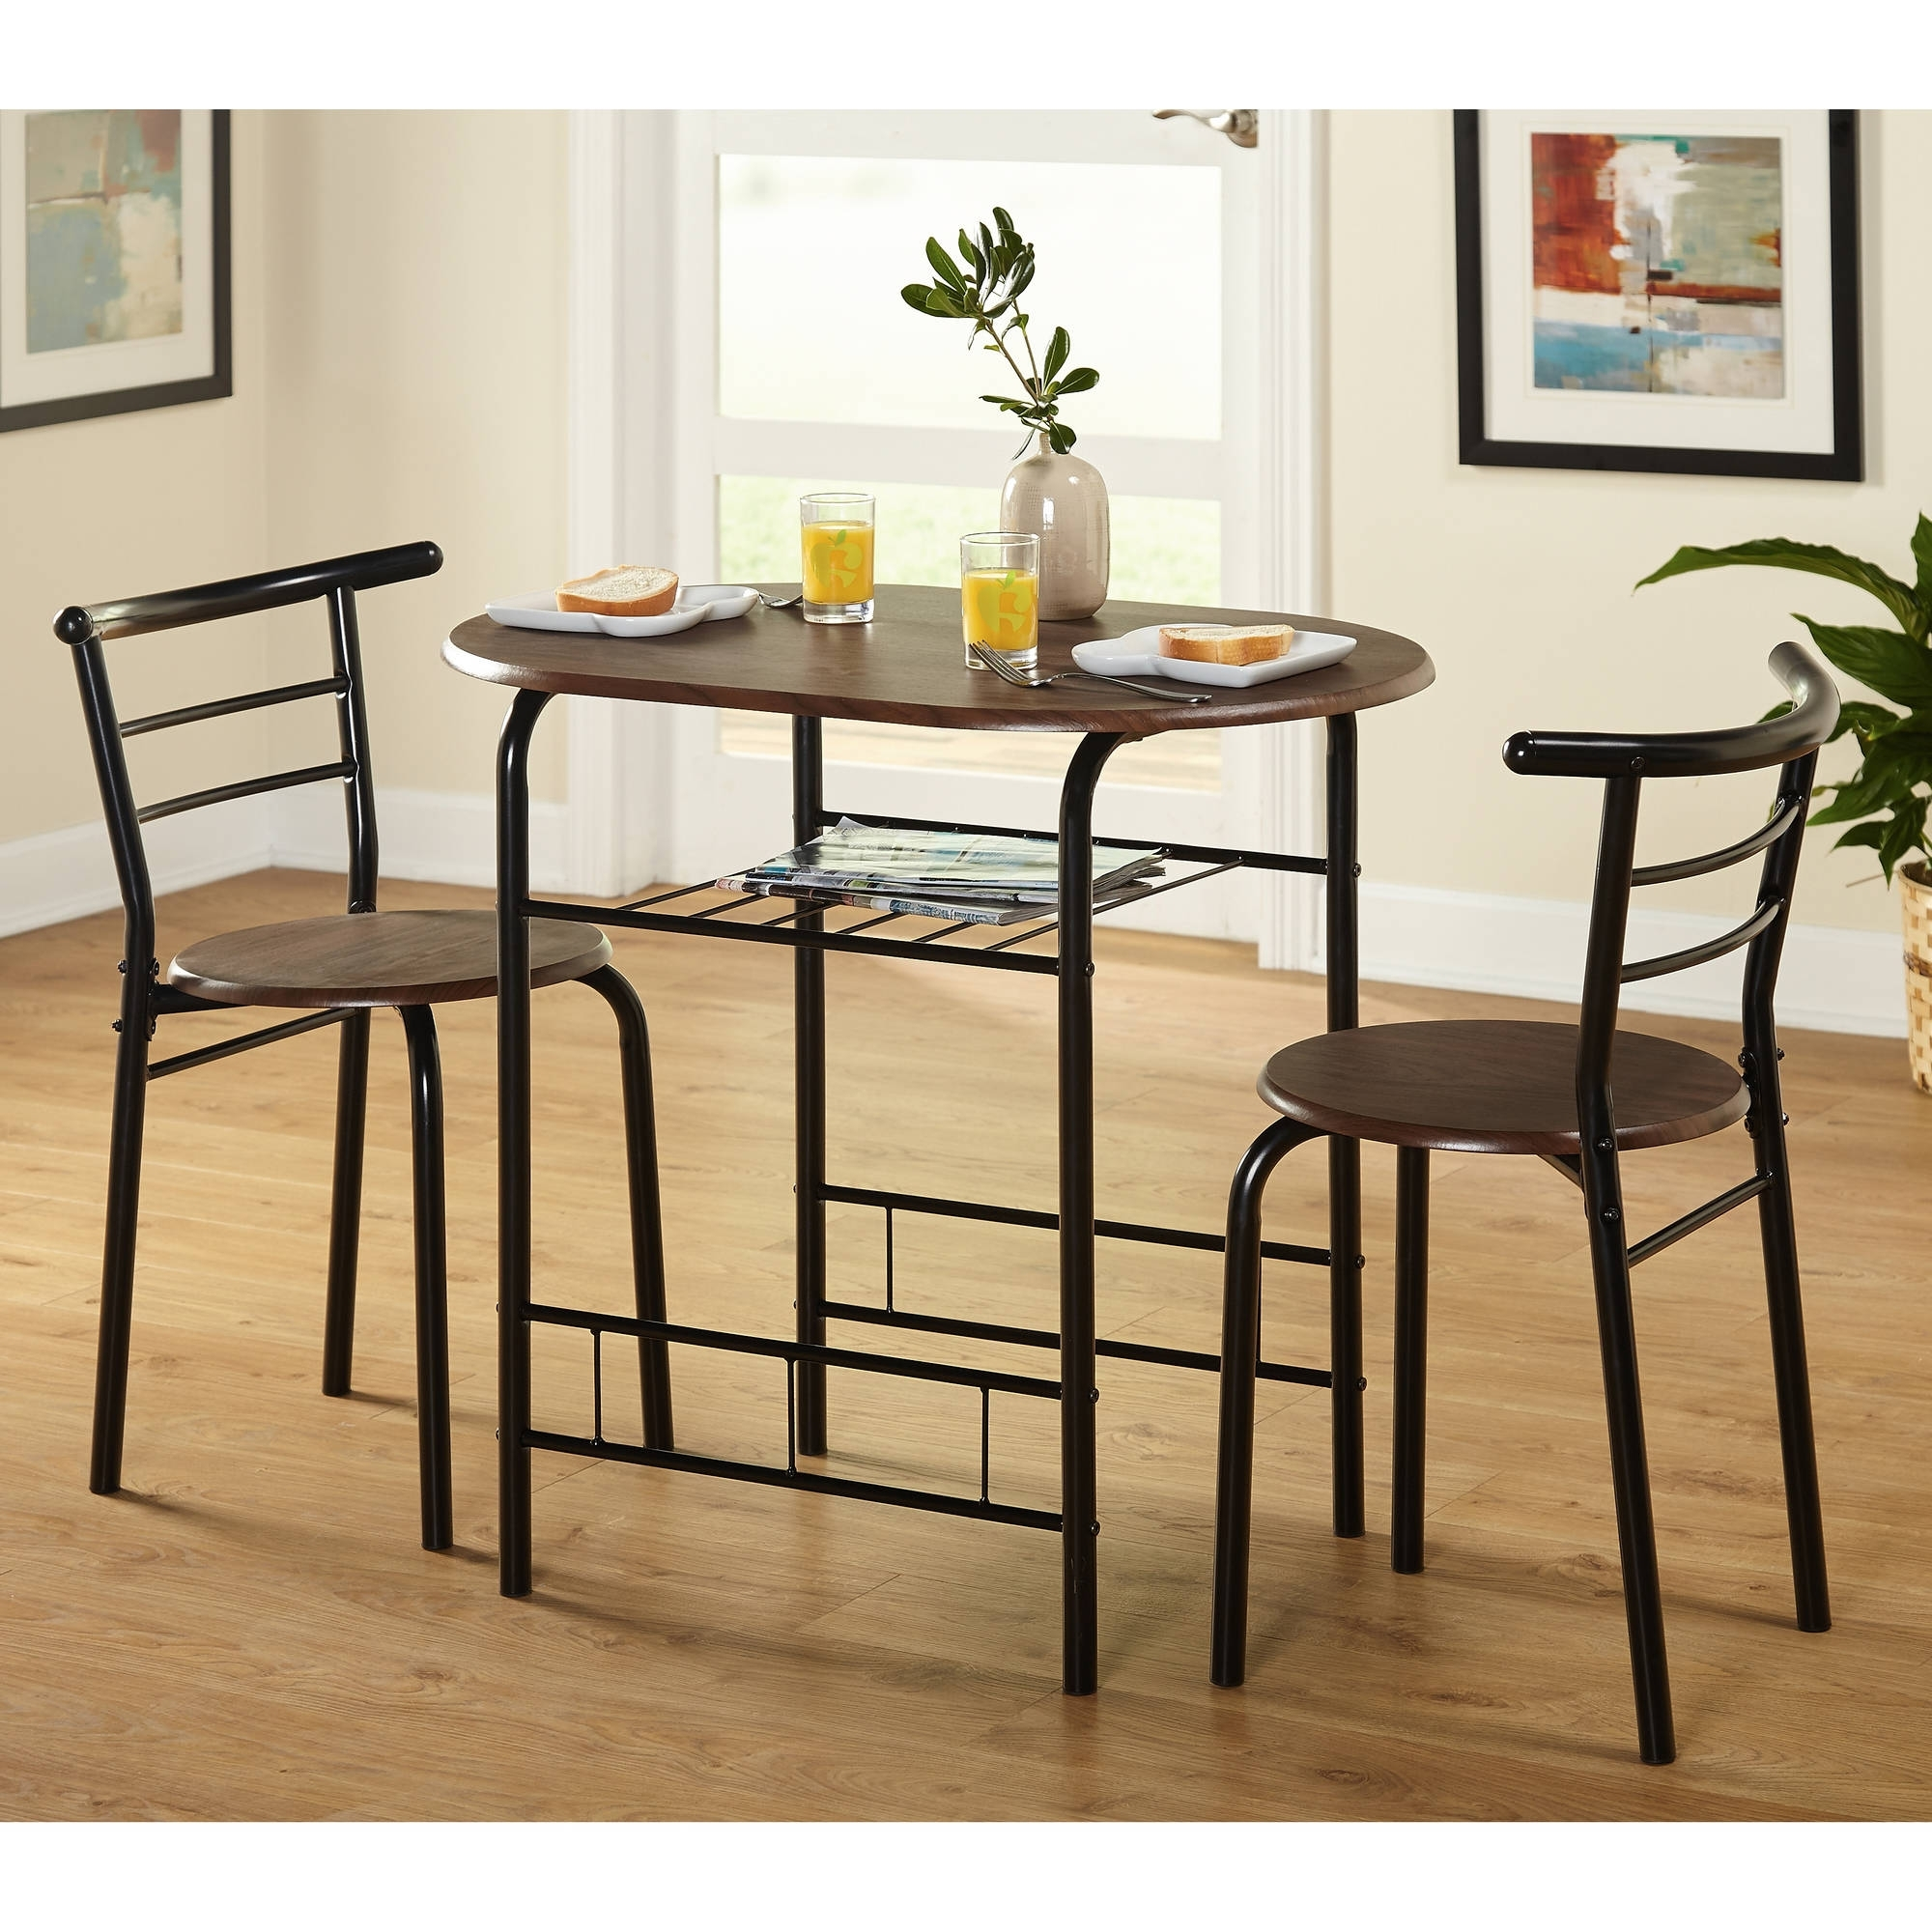 Most Up To Date Dining Table Sets For 2 For Tms 3 Piece Bistro Dining Set – Walmart (View 5 of 25)